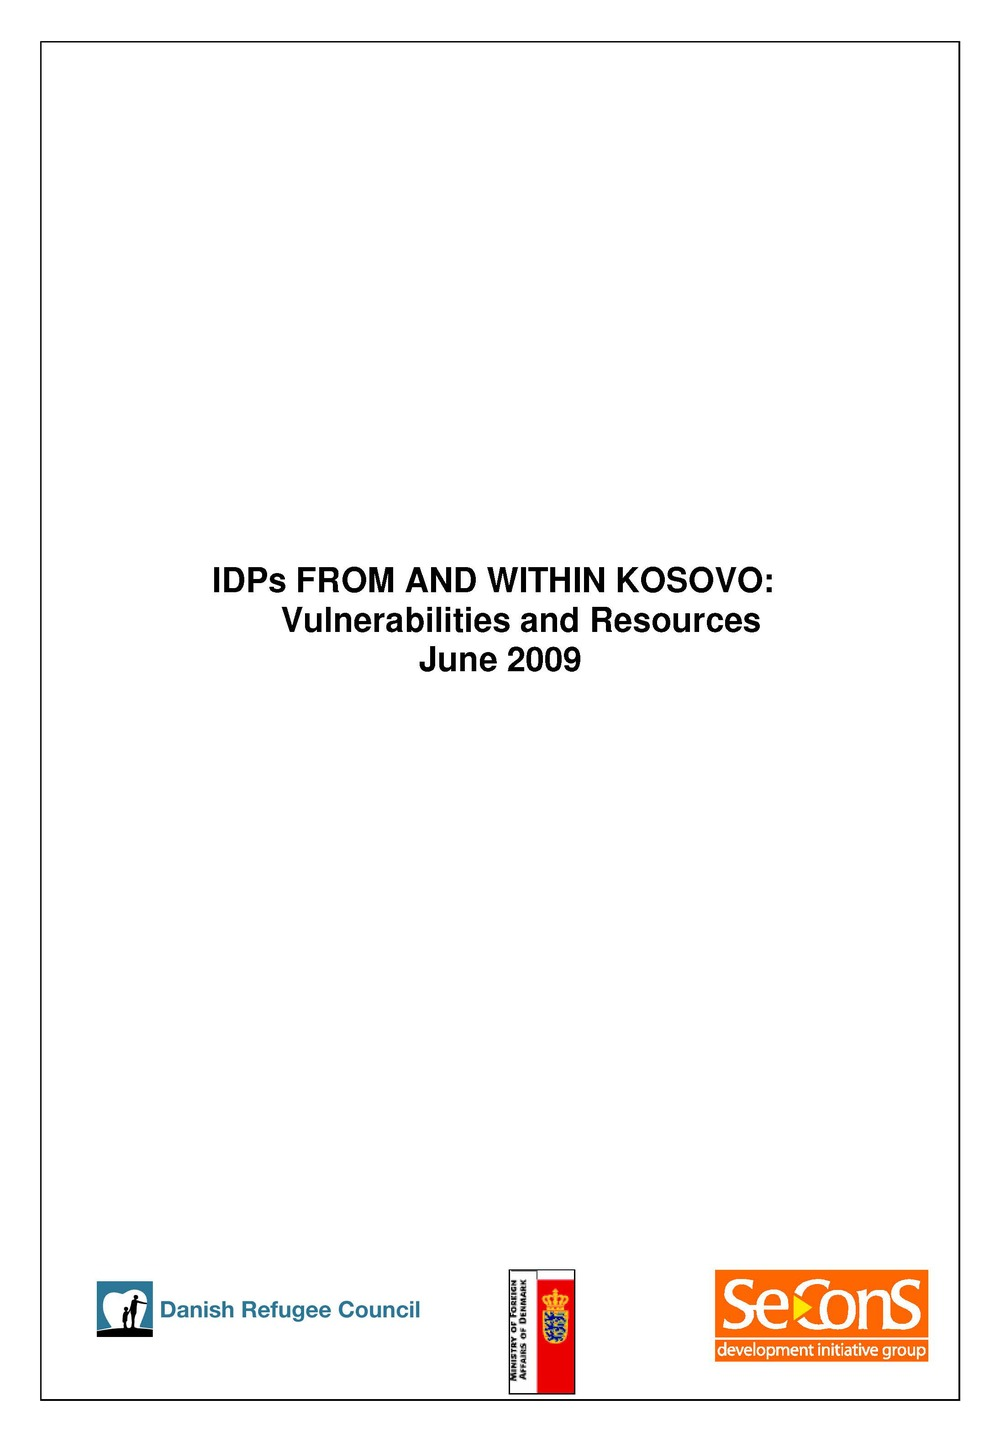 IDPs from and within Kosovo